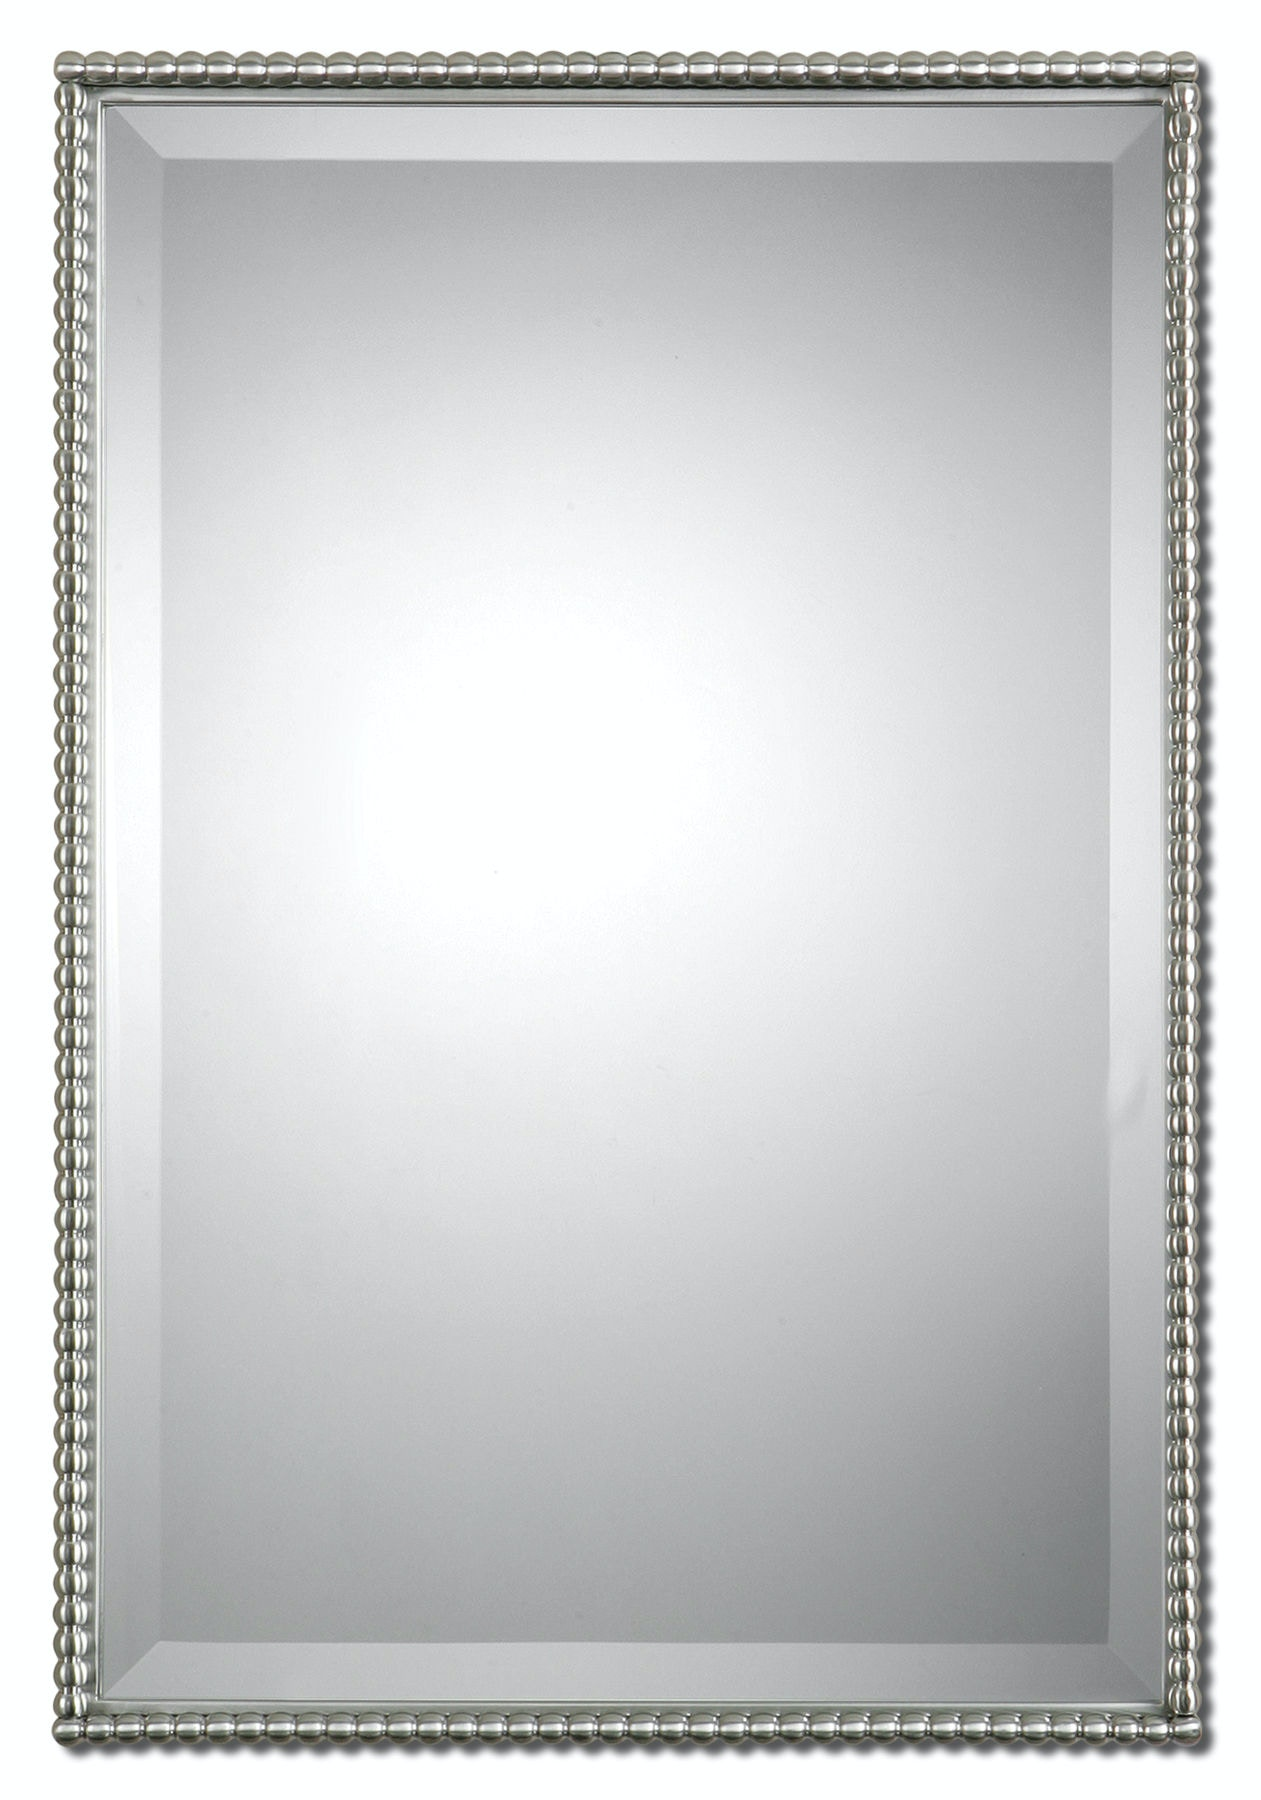 Decorative Brushed Nickel Mirror Uttermost Accessories Sherise Brushed Nickel Mirror Ut01113 Walter E Smithe Furniture Design